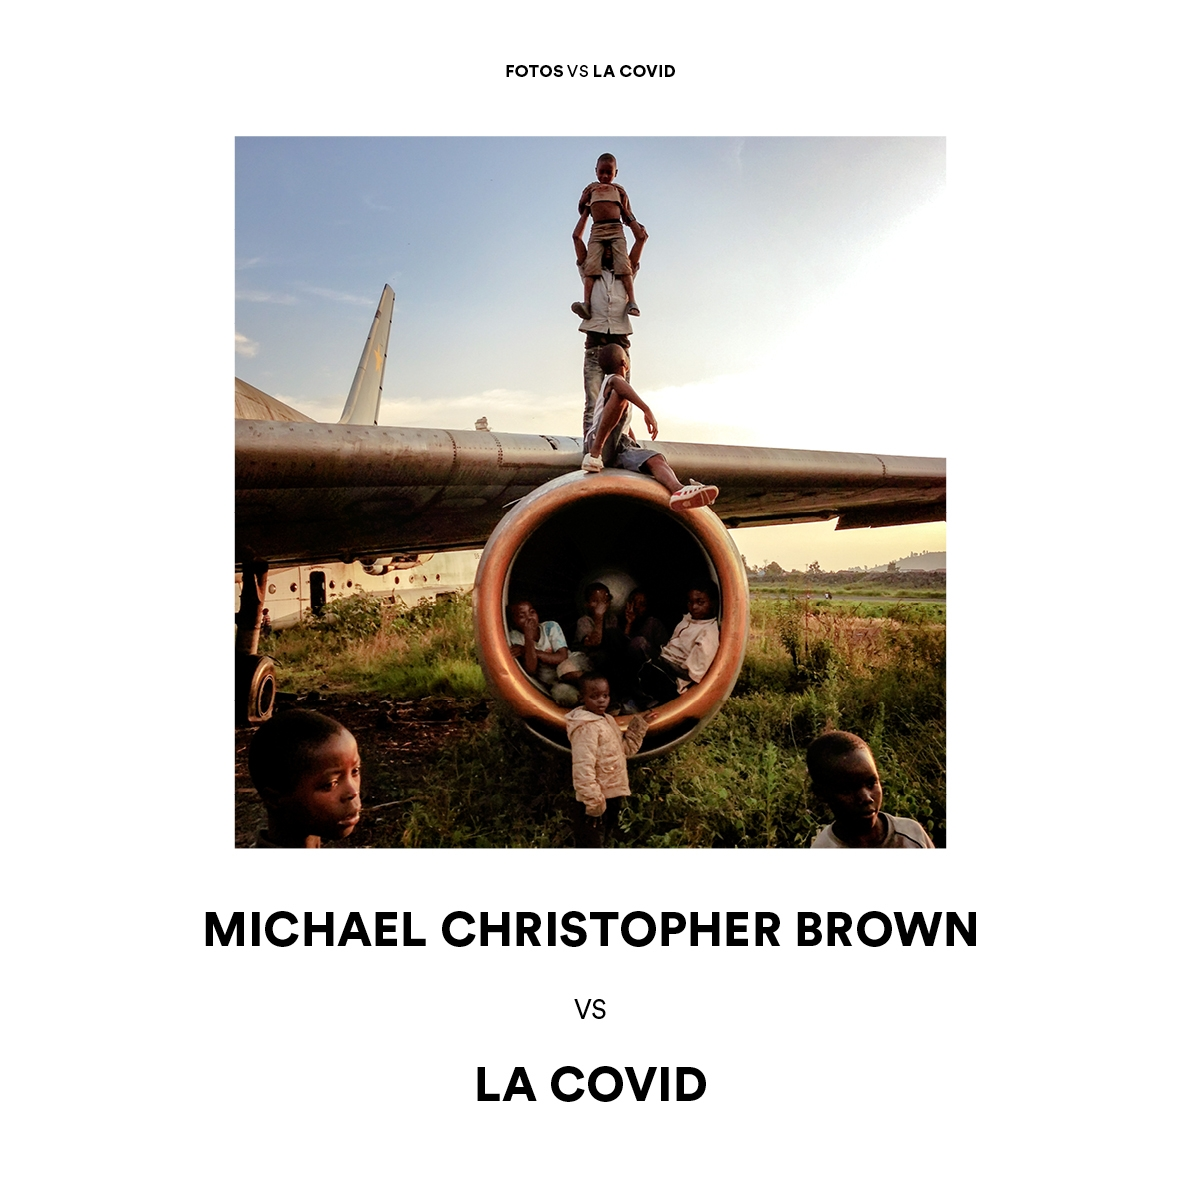 Michael Christopher Brown POST